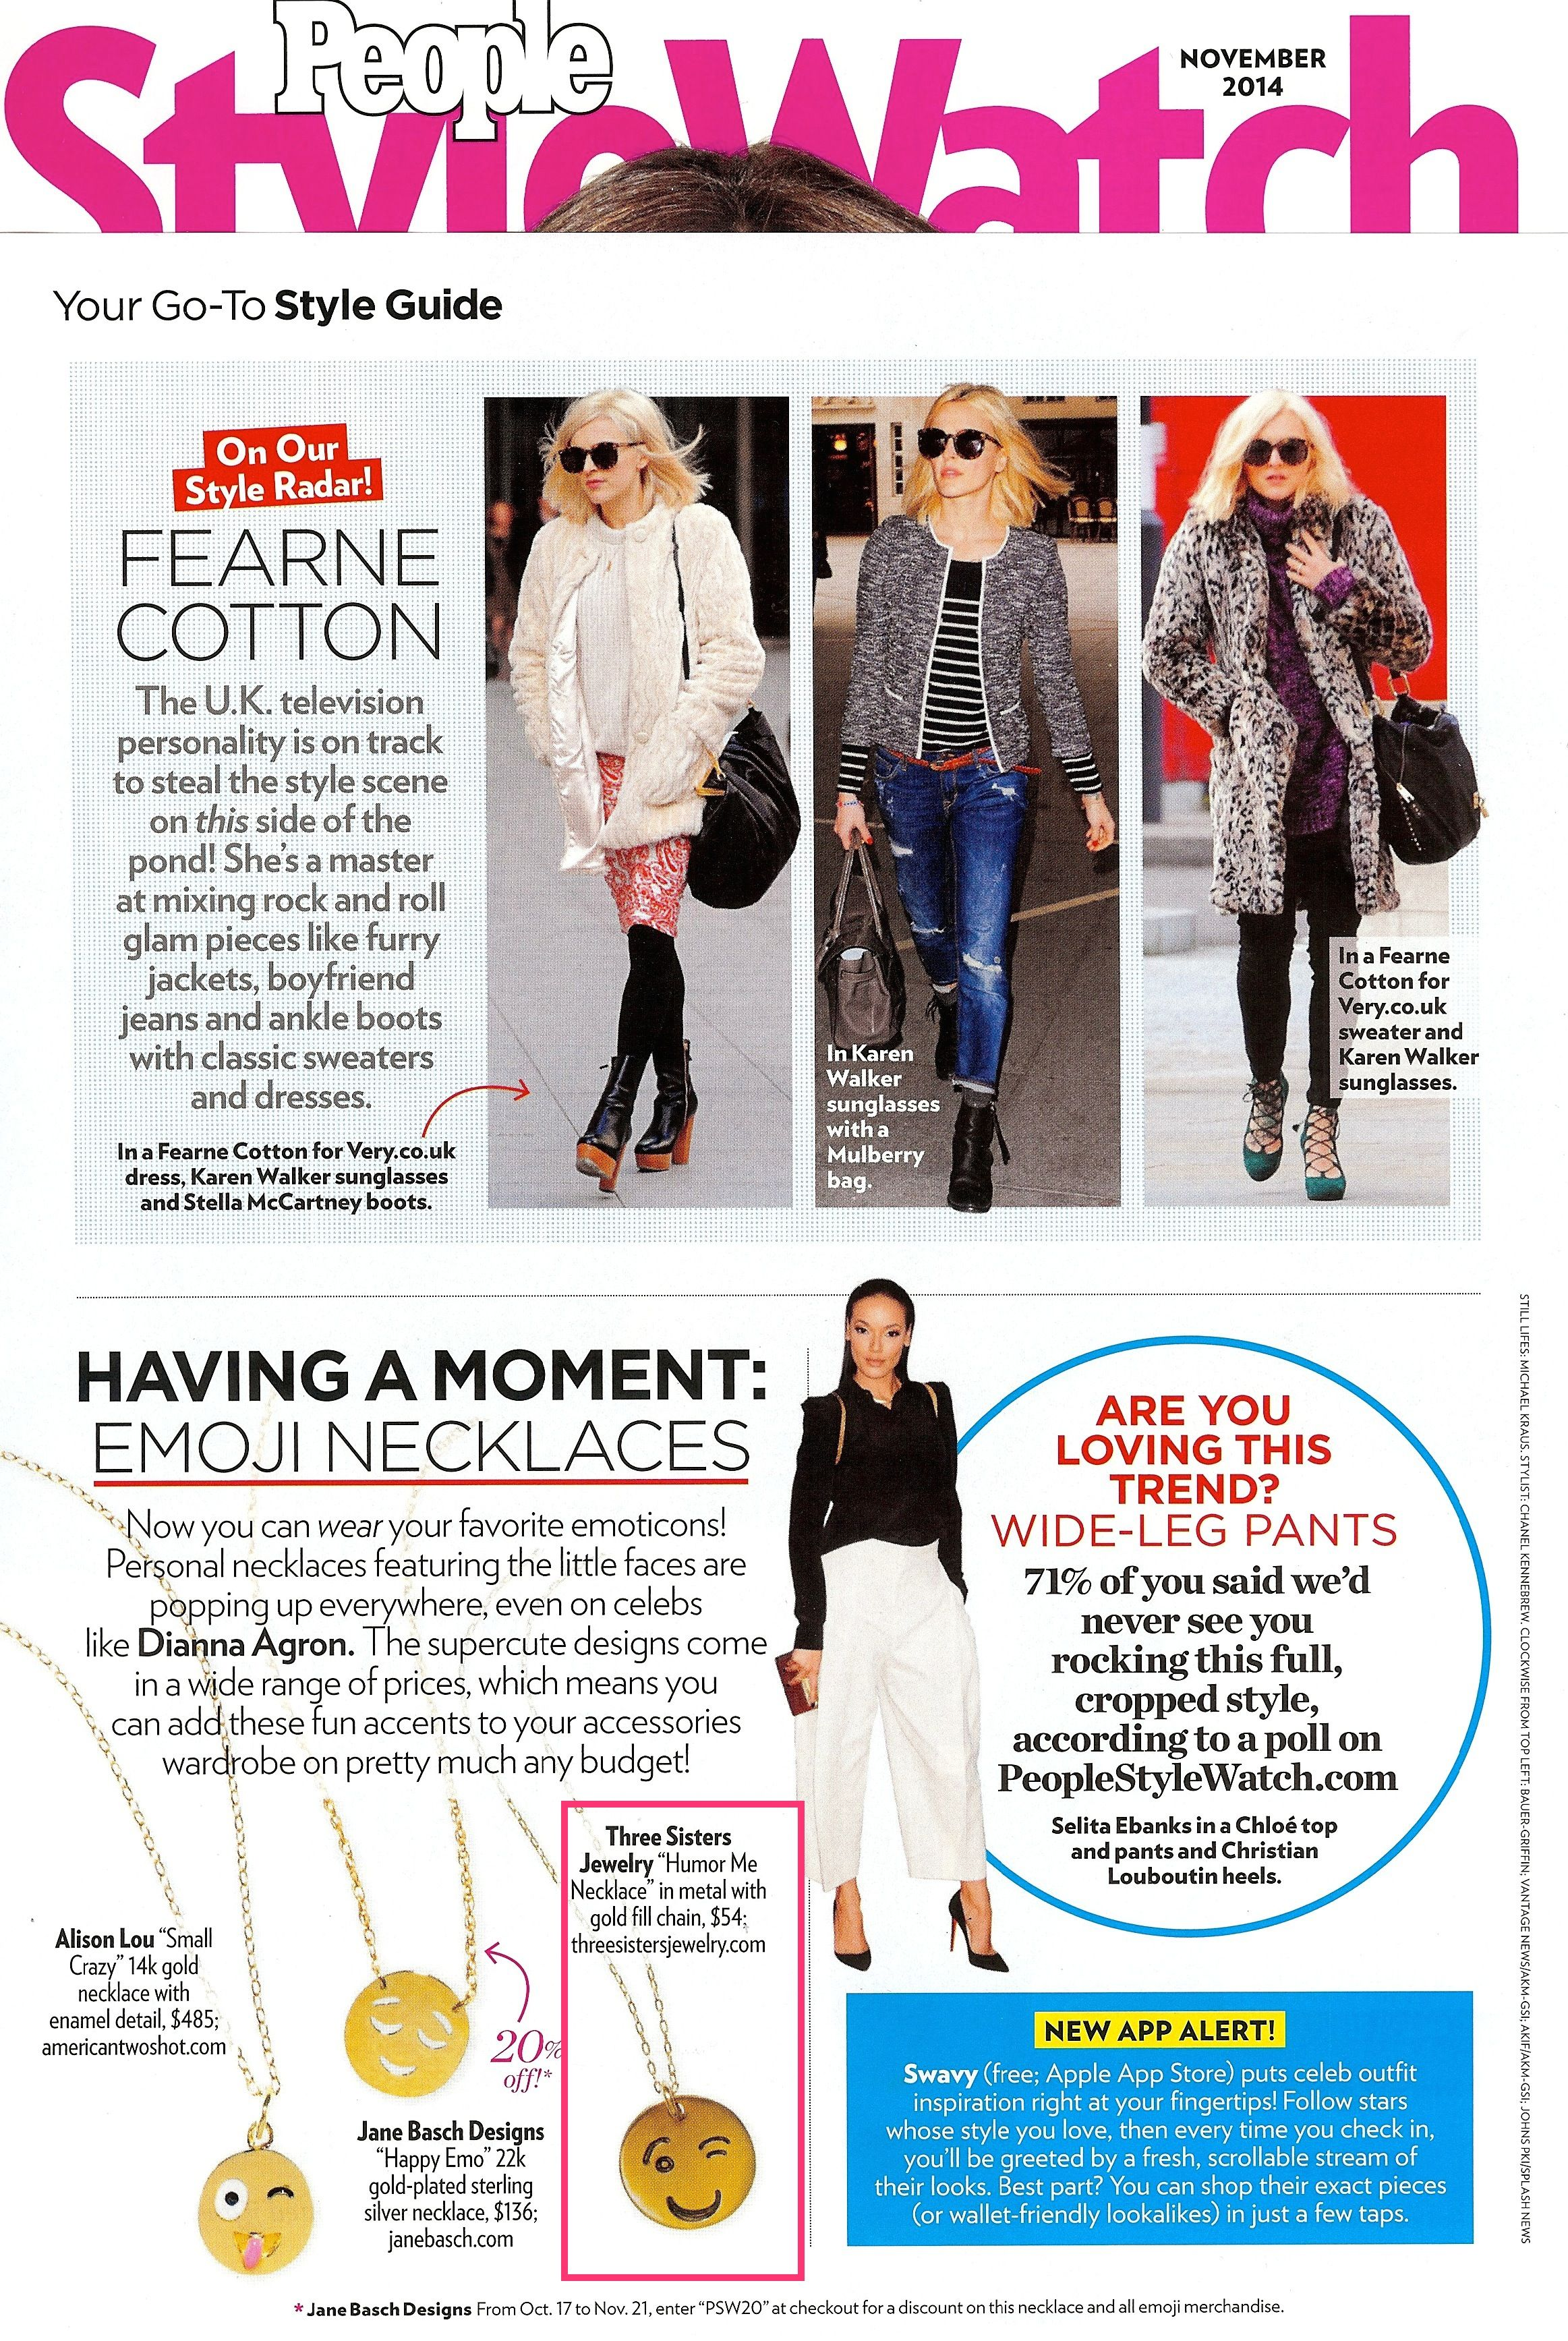 Three Sisters Jewelry Design November 2014 People StyleWatch